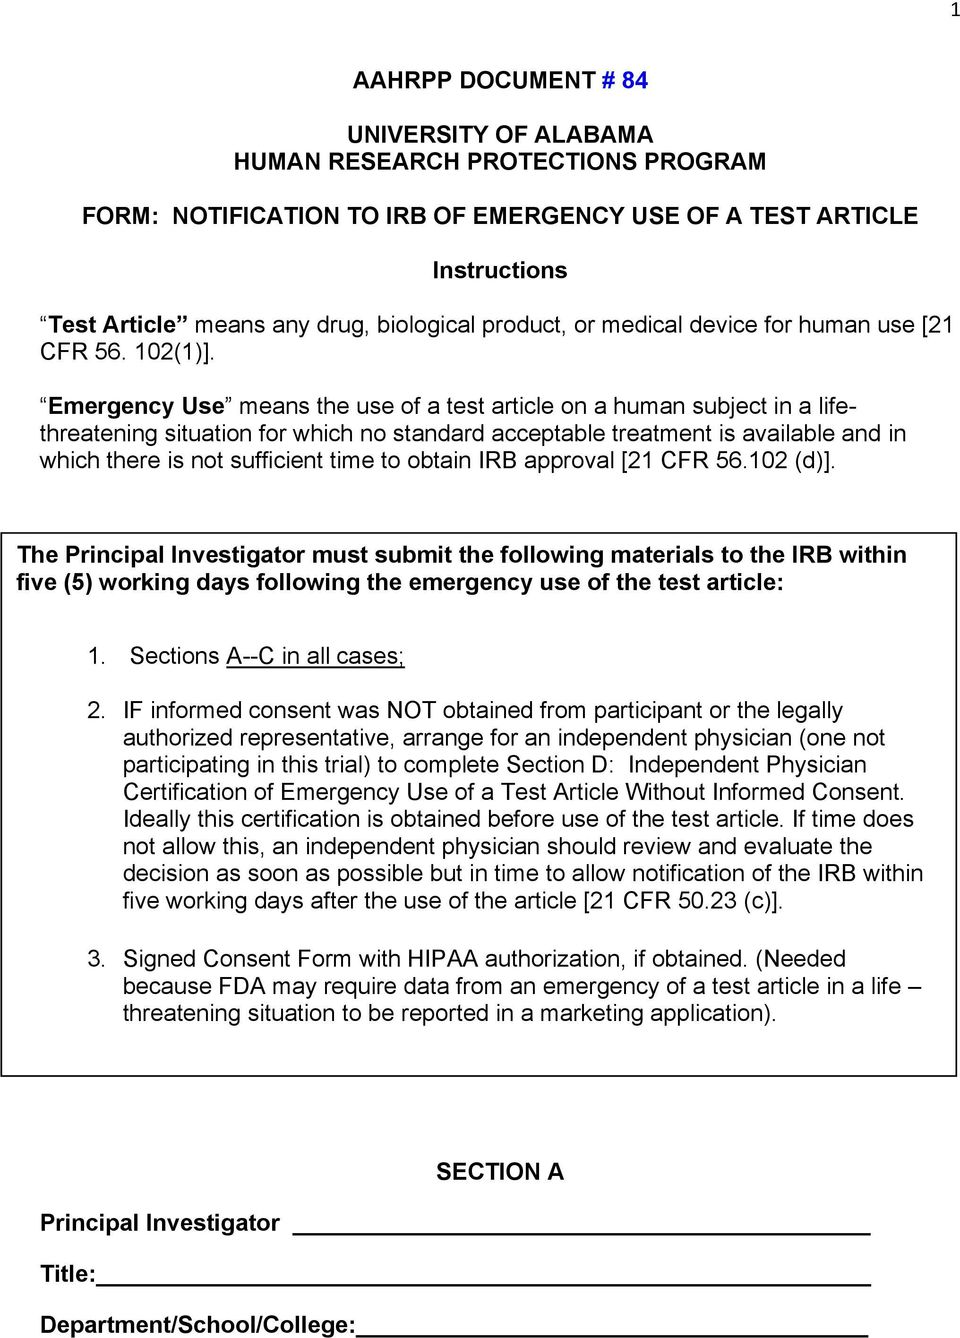 Emergency Use means the use of a test article on a human subject in a lifethreatening situation for which no standard acceptable treatment is available and in which there is not sufficient time to